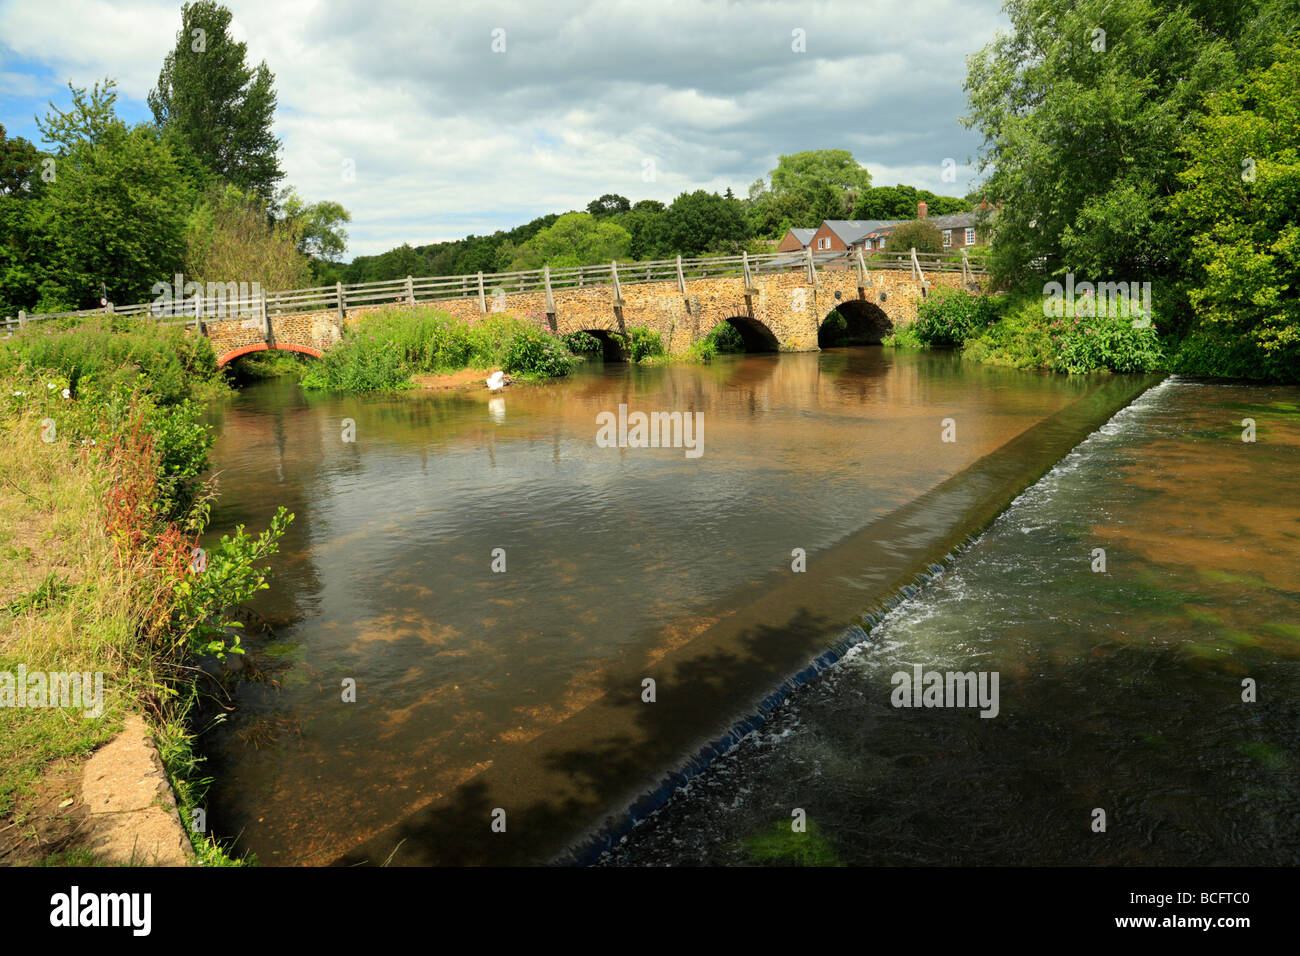 Tilford East Bridge. Crossing the river Wey, Surrey, England, UK. - Stock Image